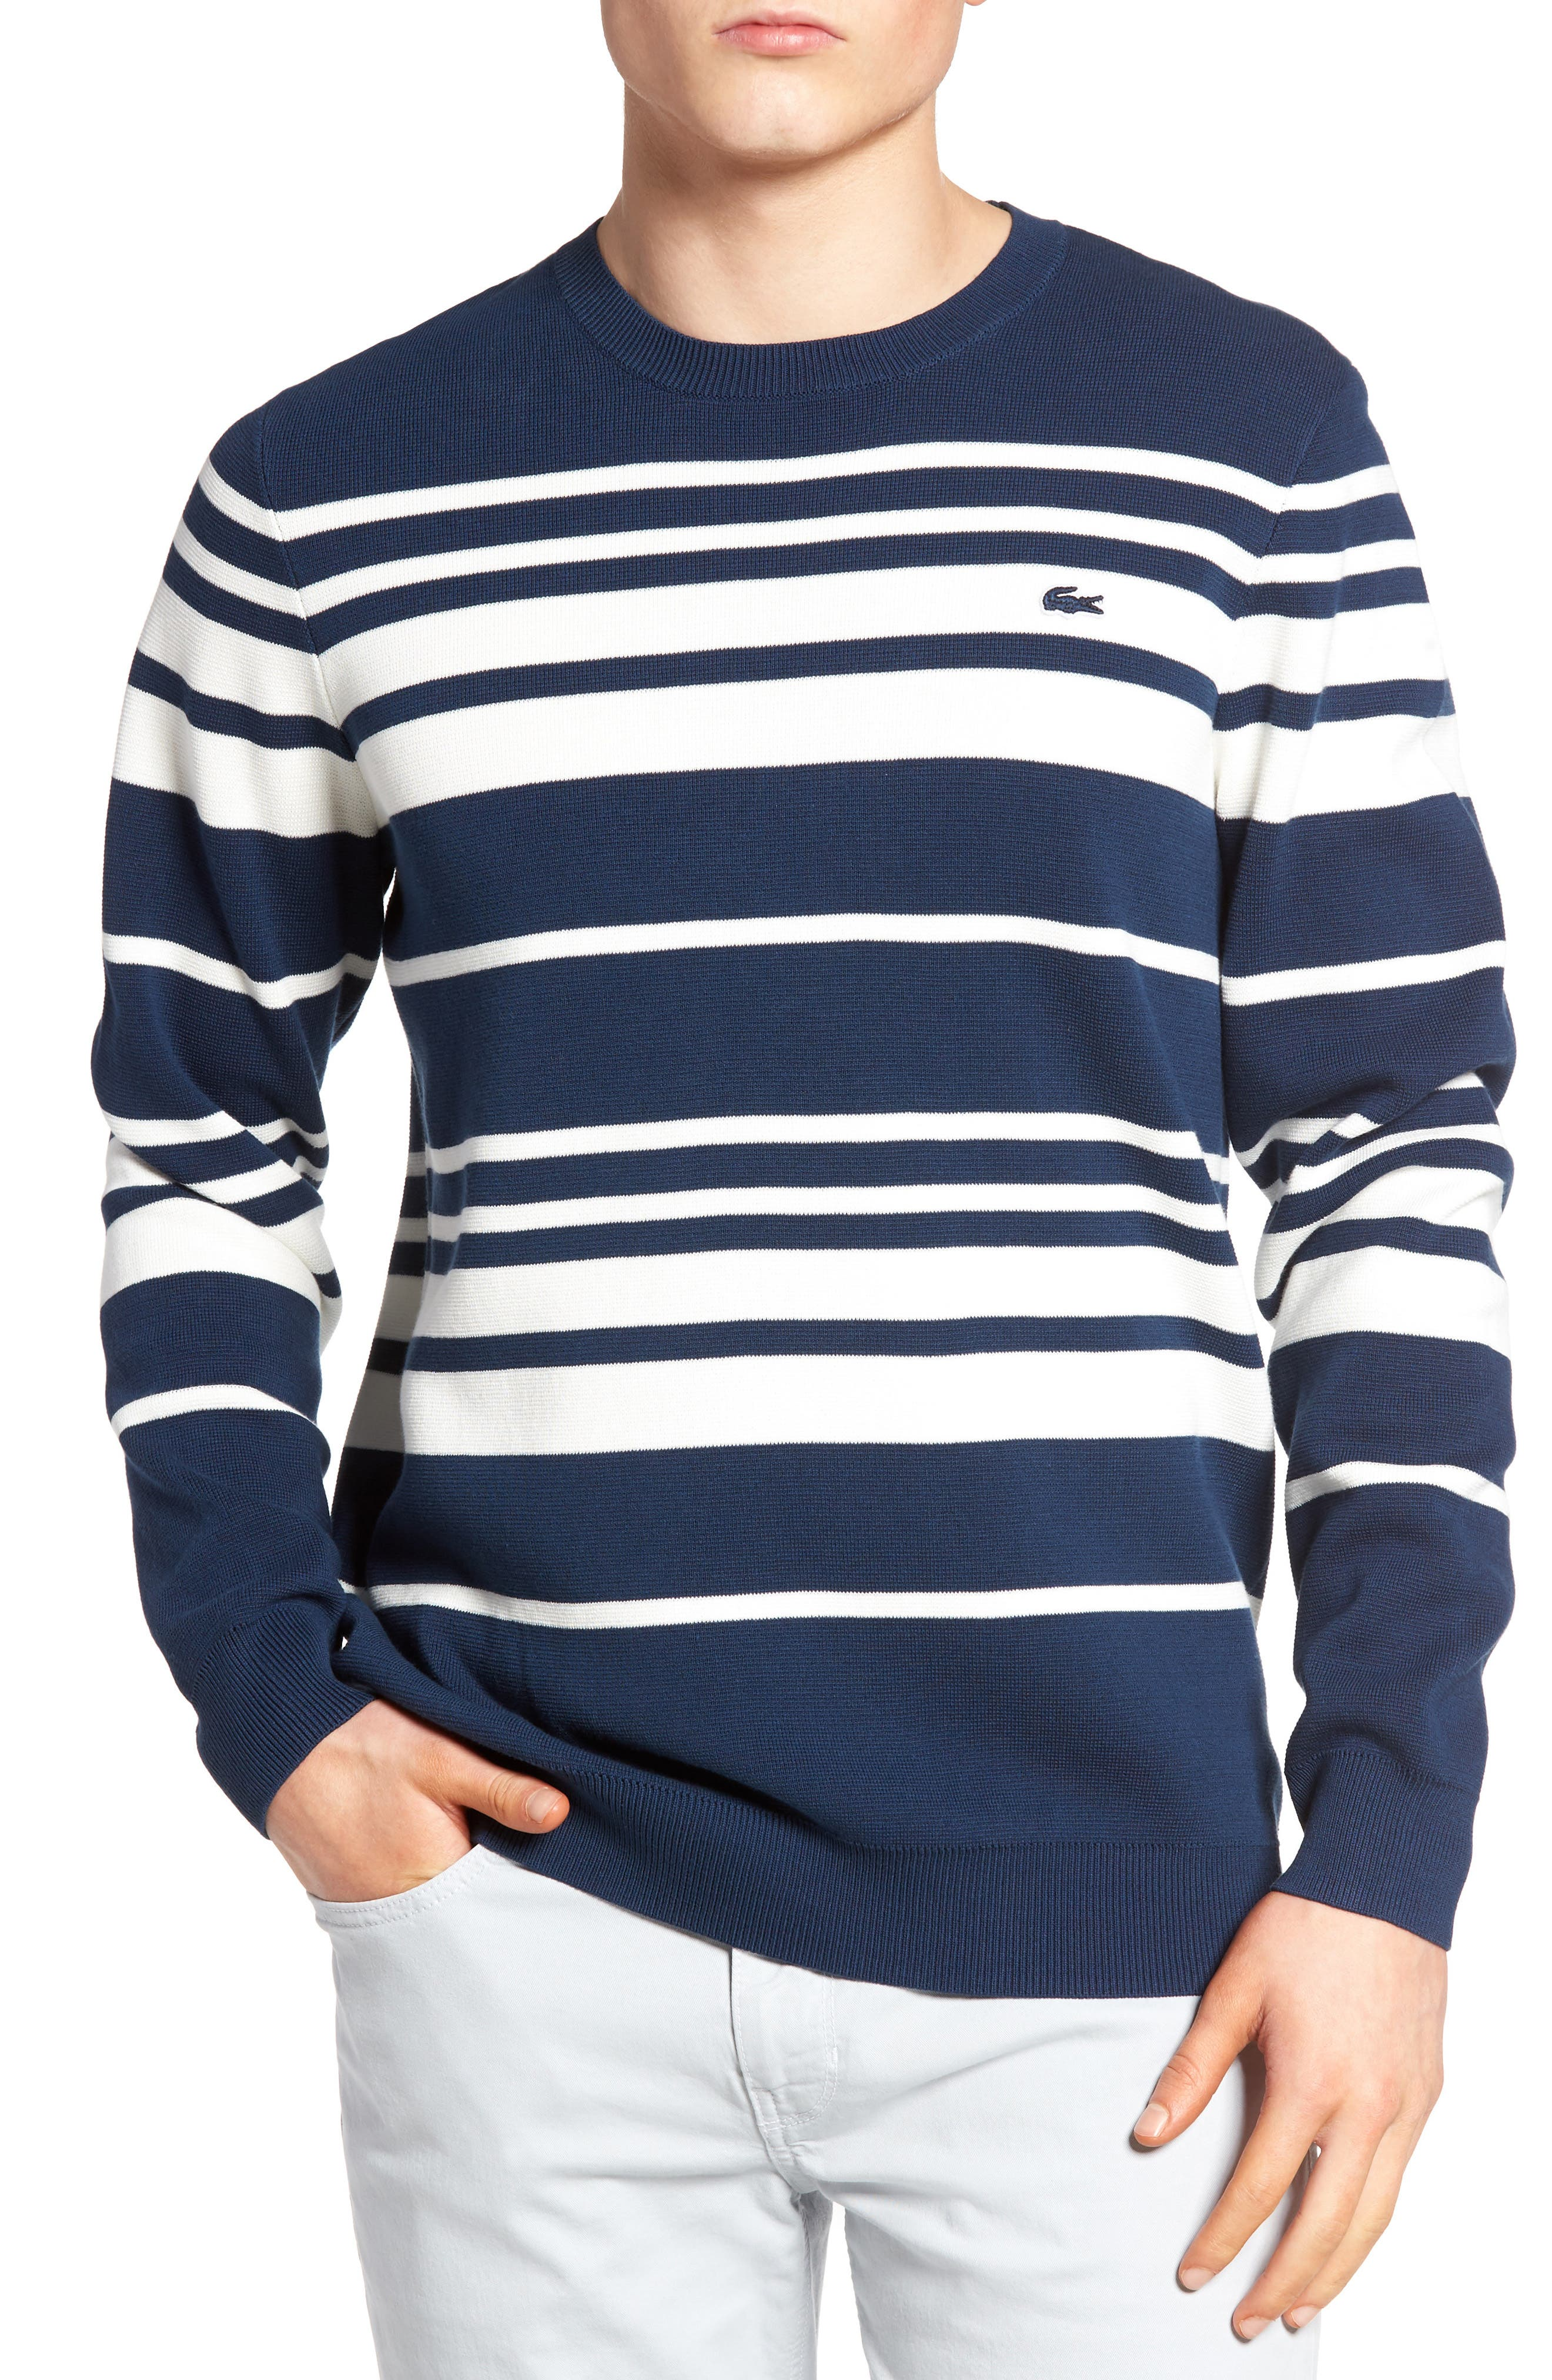 LACOSTE Milano Stripe Sweater